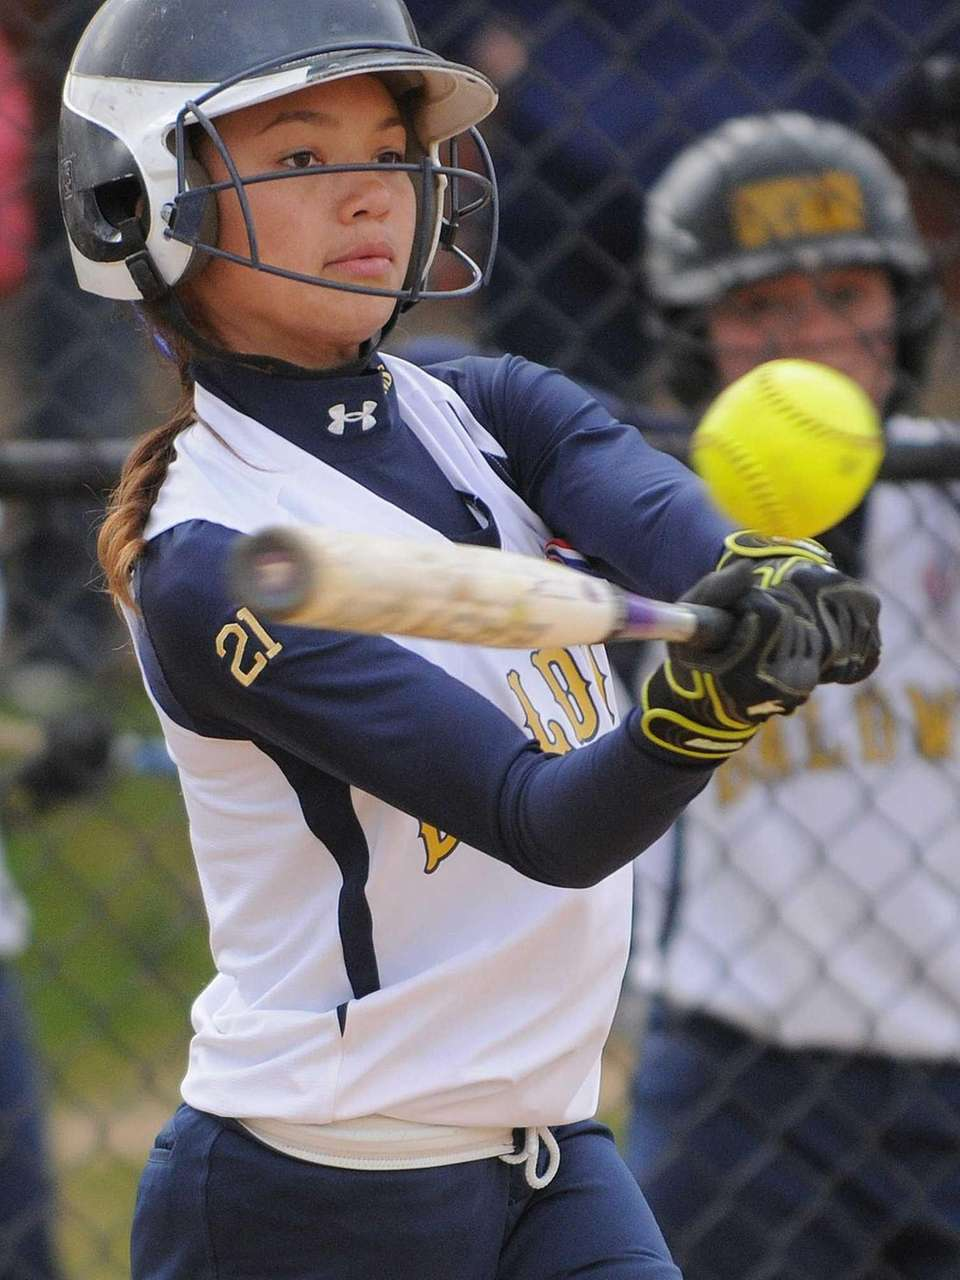 Baldwin shortstop Jade Aponte singles to start the